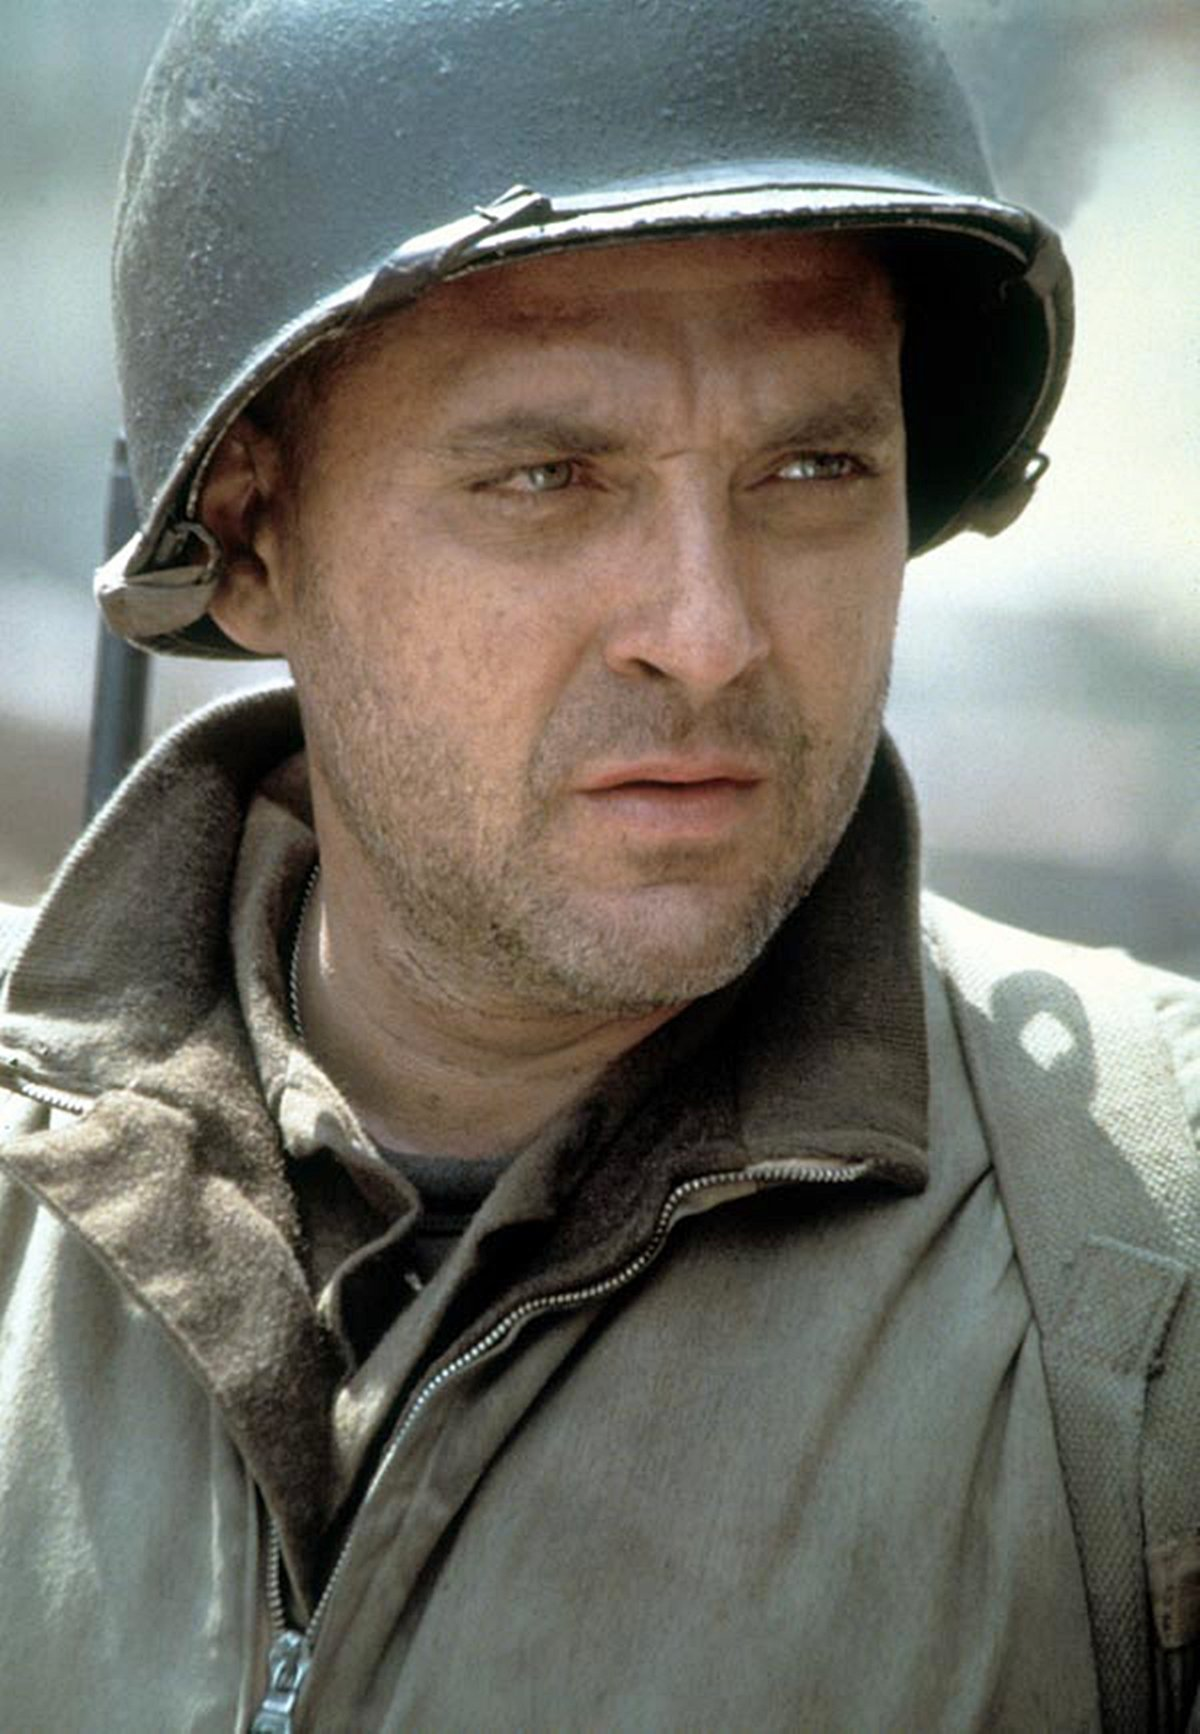 5 9 10 Things You Probably Didn't Know About Saving Private Ryan